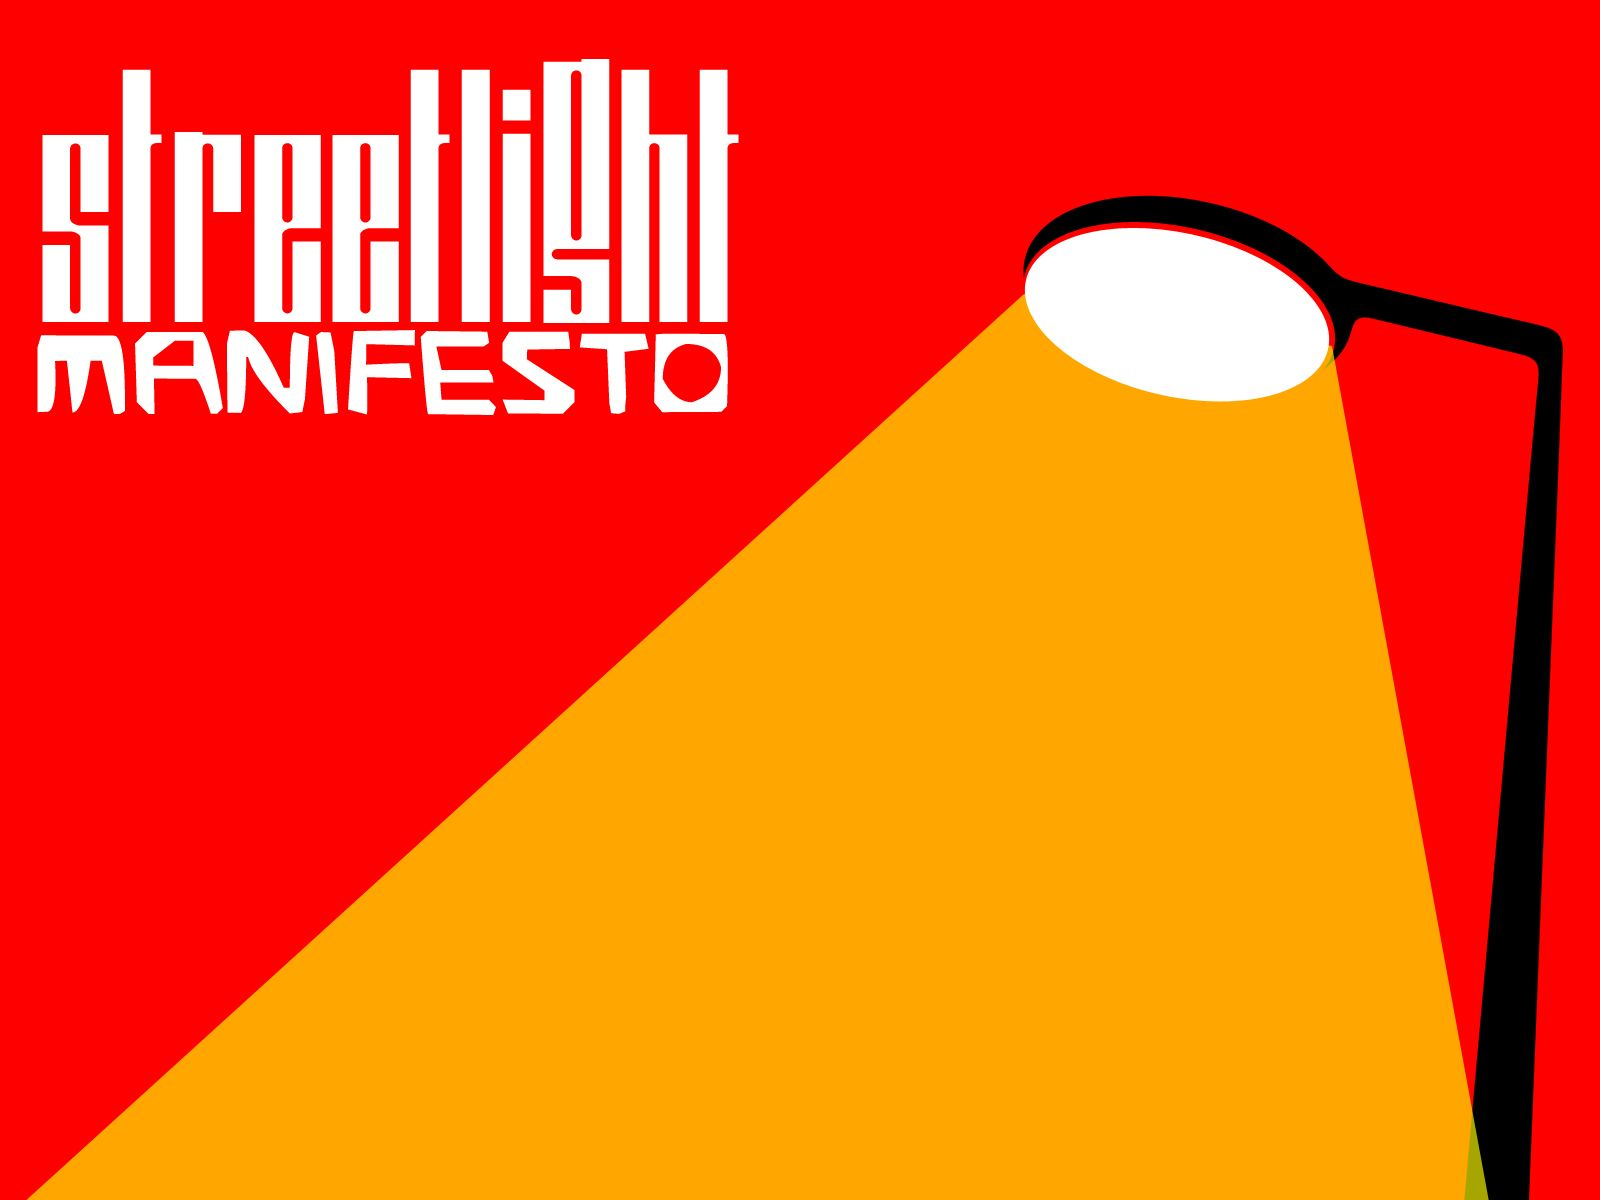 Streetlight Manifesto Wallpaper 16001200 Hd Wallpapers Background